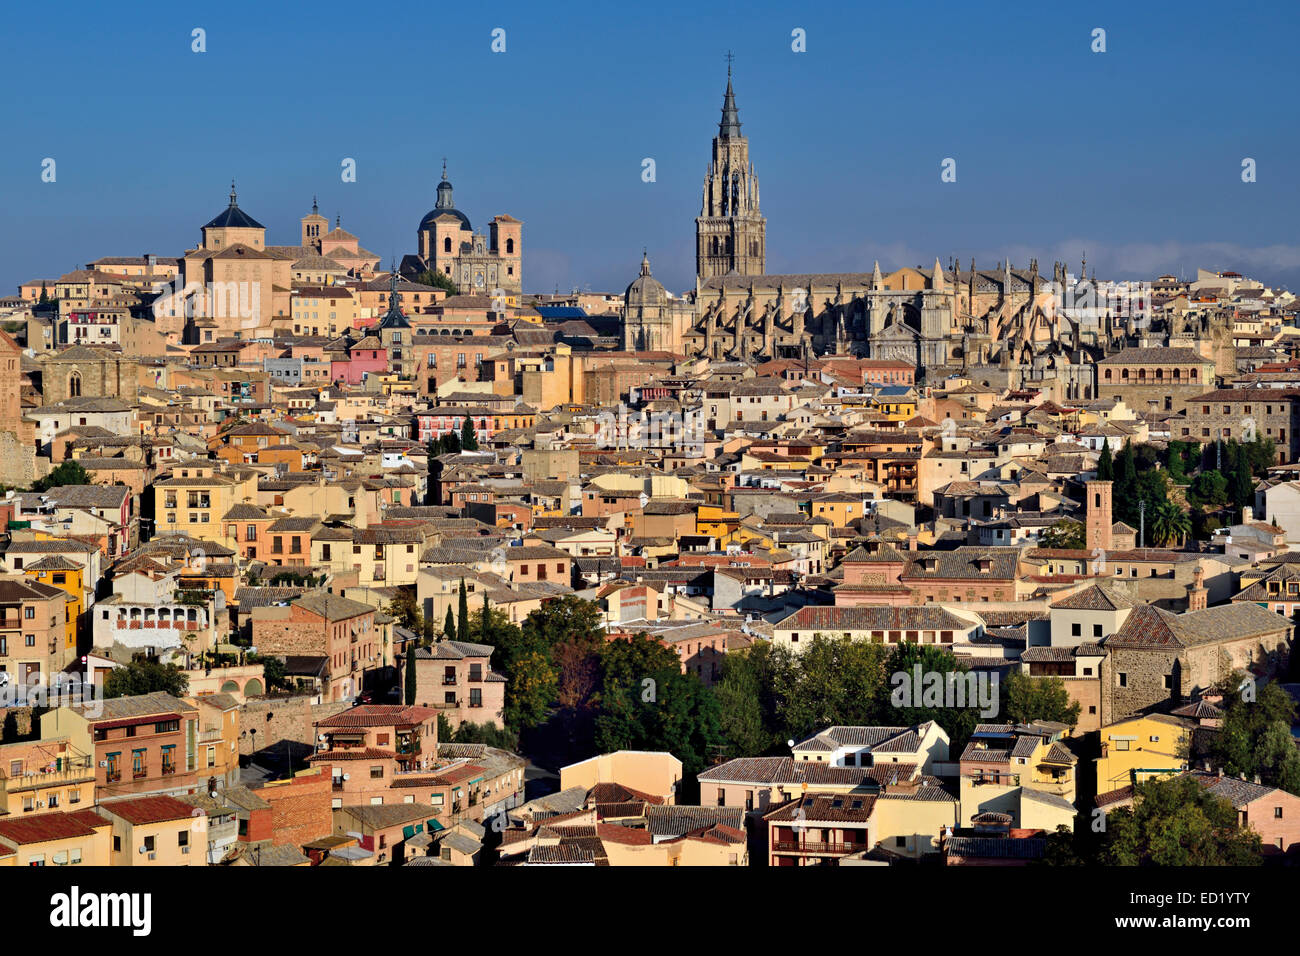 Spain, Castilla-La Mancha: View to the medieval town of Toledo - Stock Image